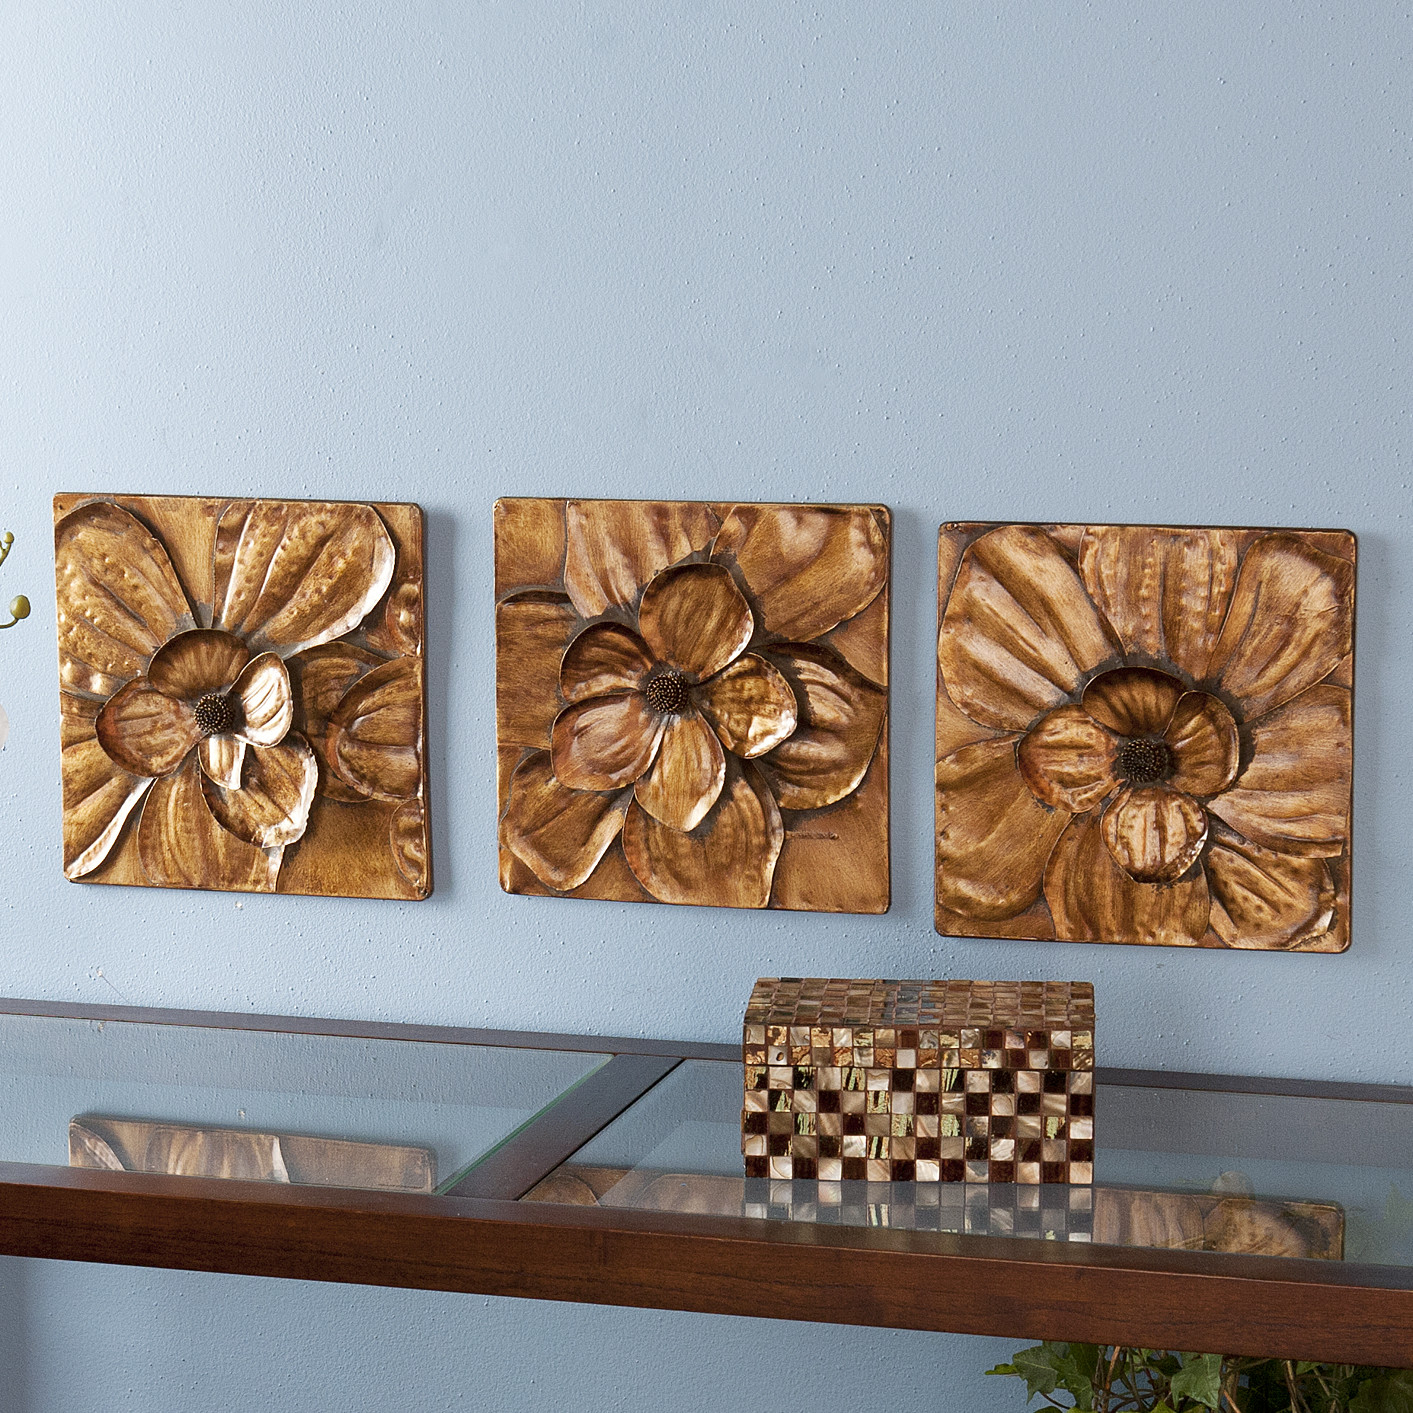 Wildon Home 3 Piece Burton Magnolia Panel Wall D Cor Set Inside 3 Piece Magnolia Brown Panel Wall Decor Sets (View 30 of 30)